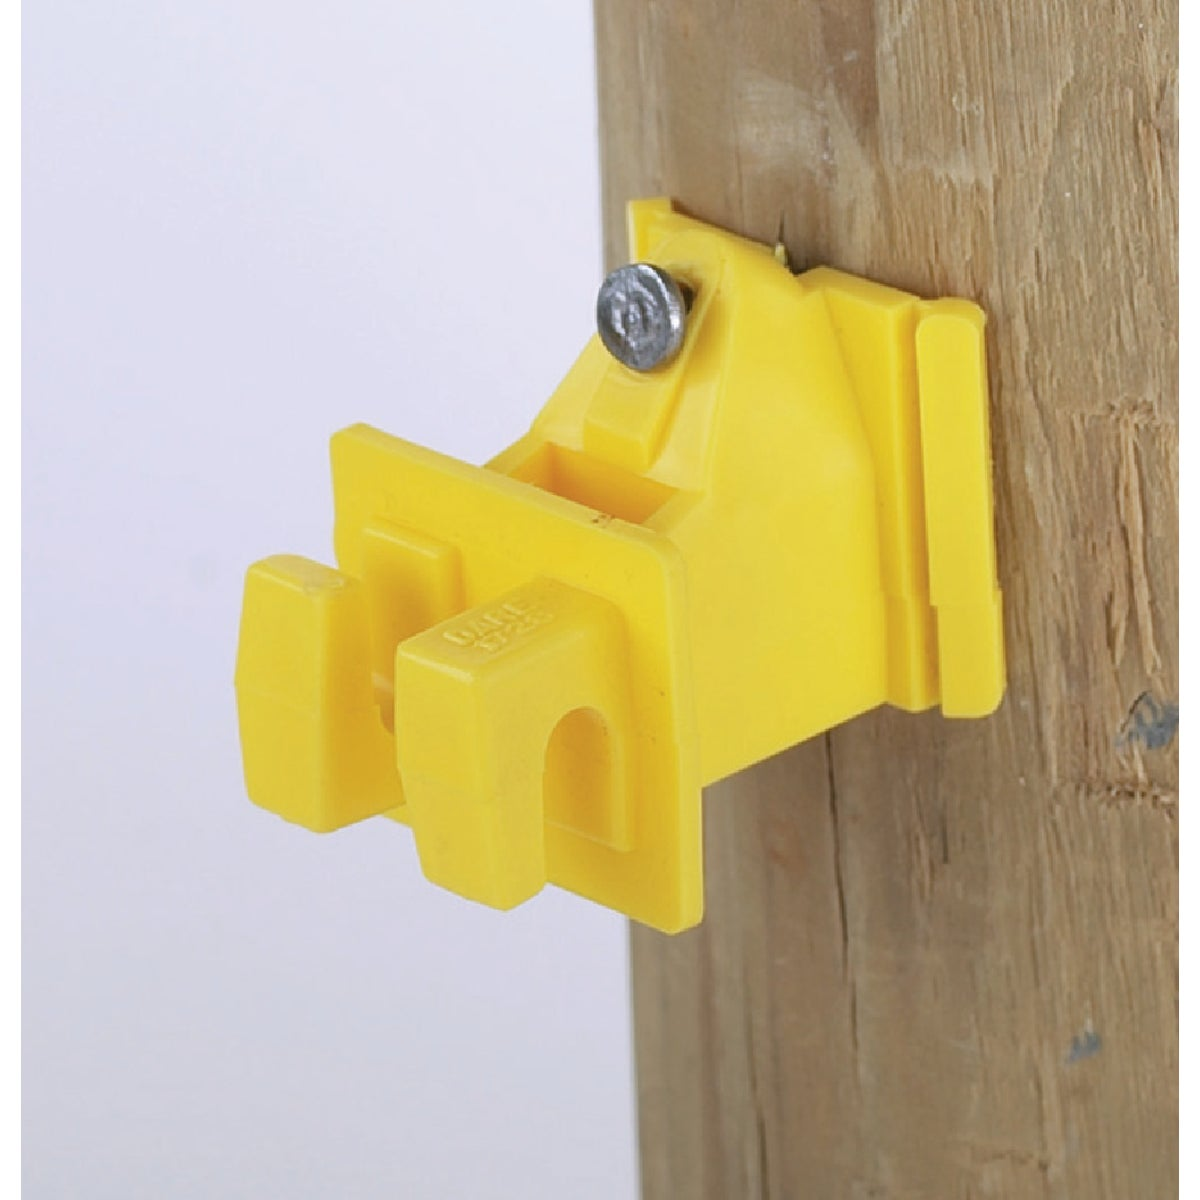 SNUG WOOD POST INSULATOR - 1728-25 by Dare Products Inc